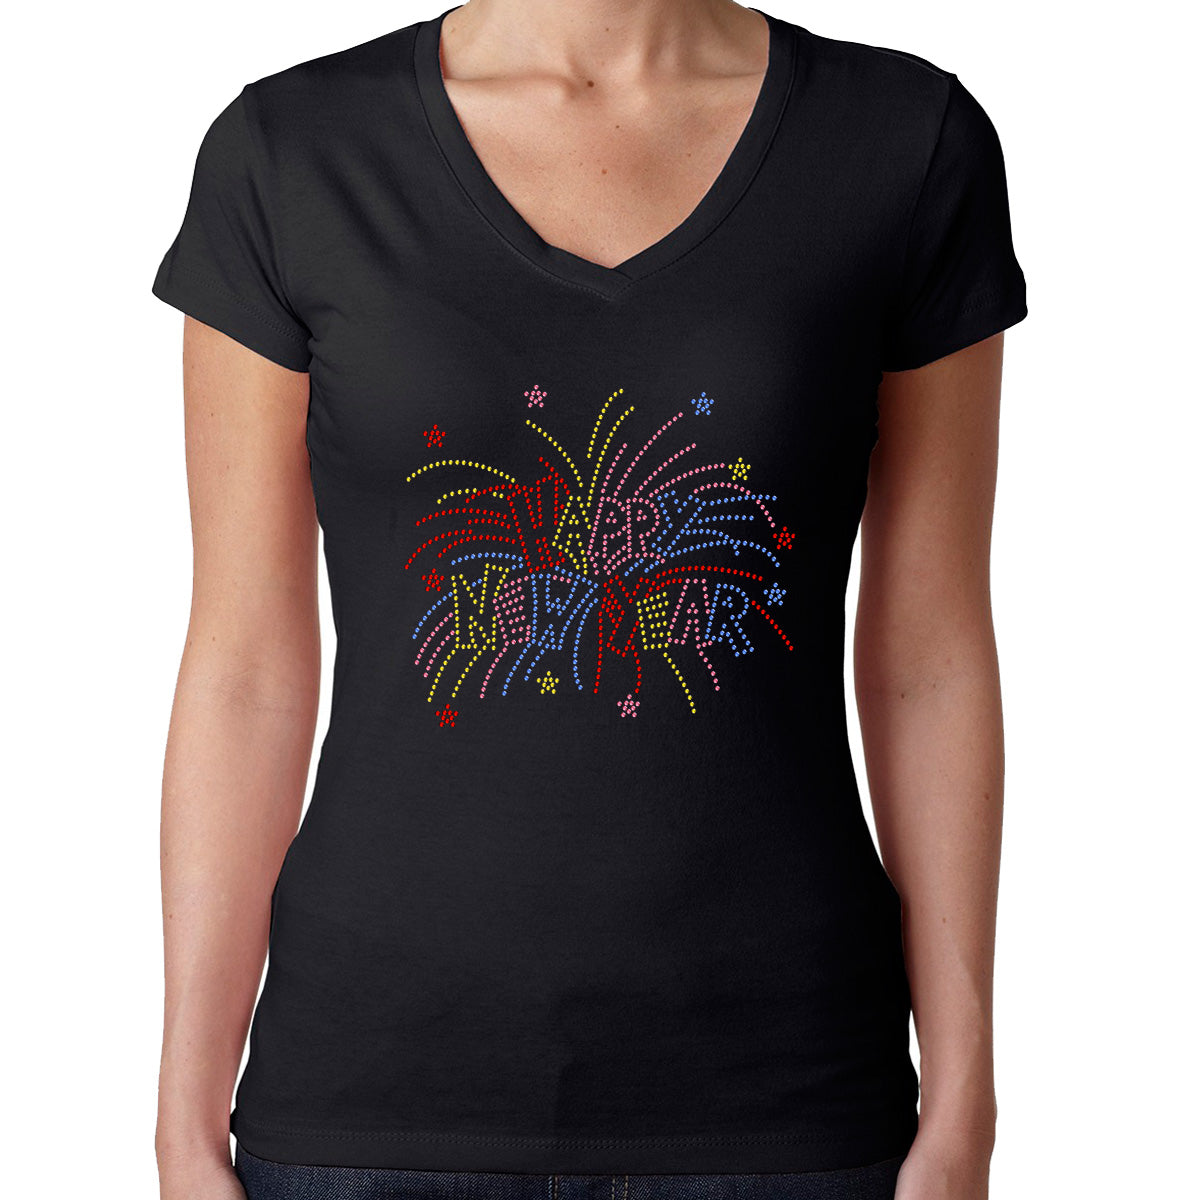 Womens T-Shirt Rhinestone Bling Black Fitted Tee Happy New Year Fireworks